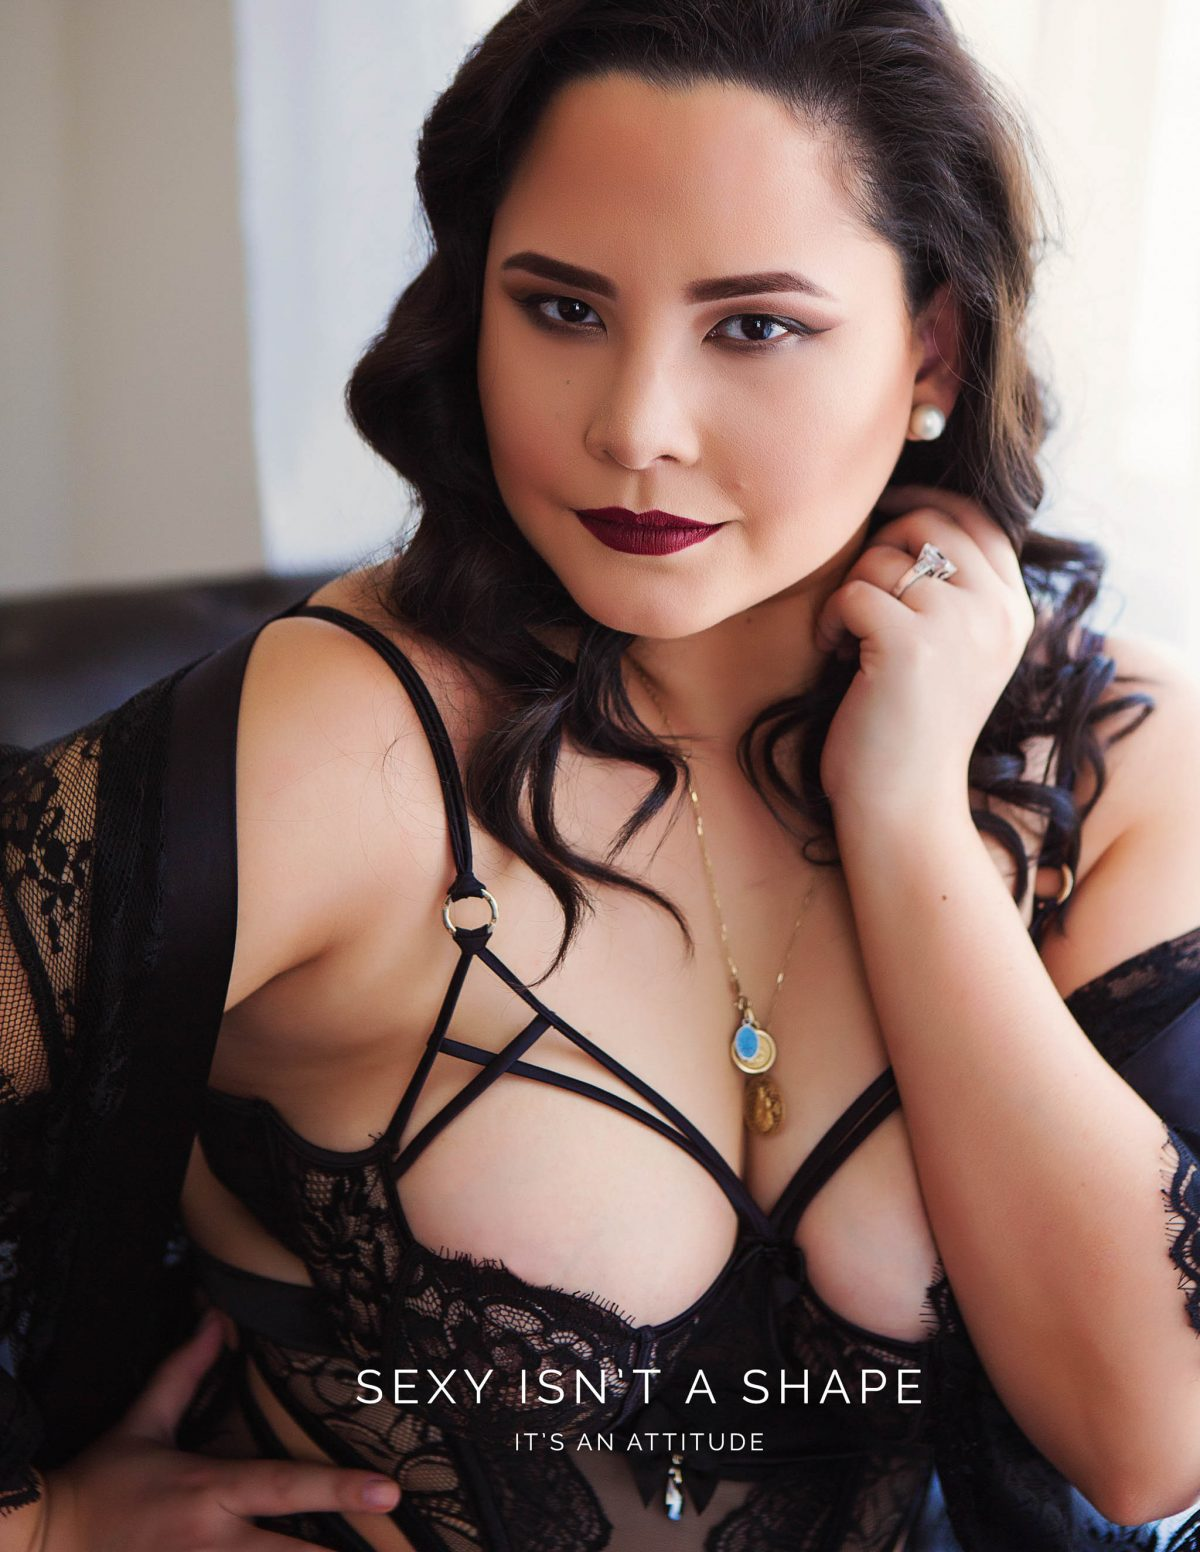 Boudoir Photography Client Welcome Guide